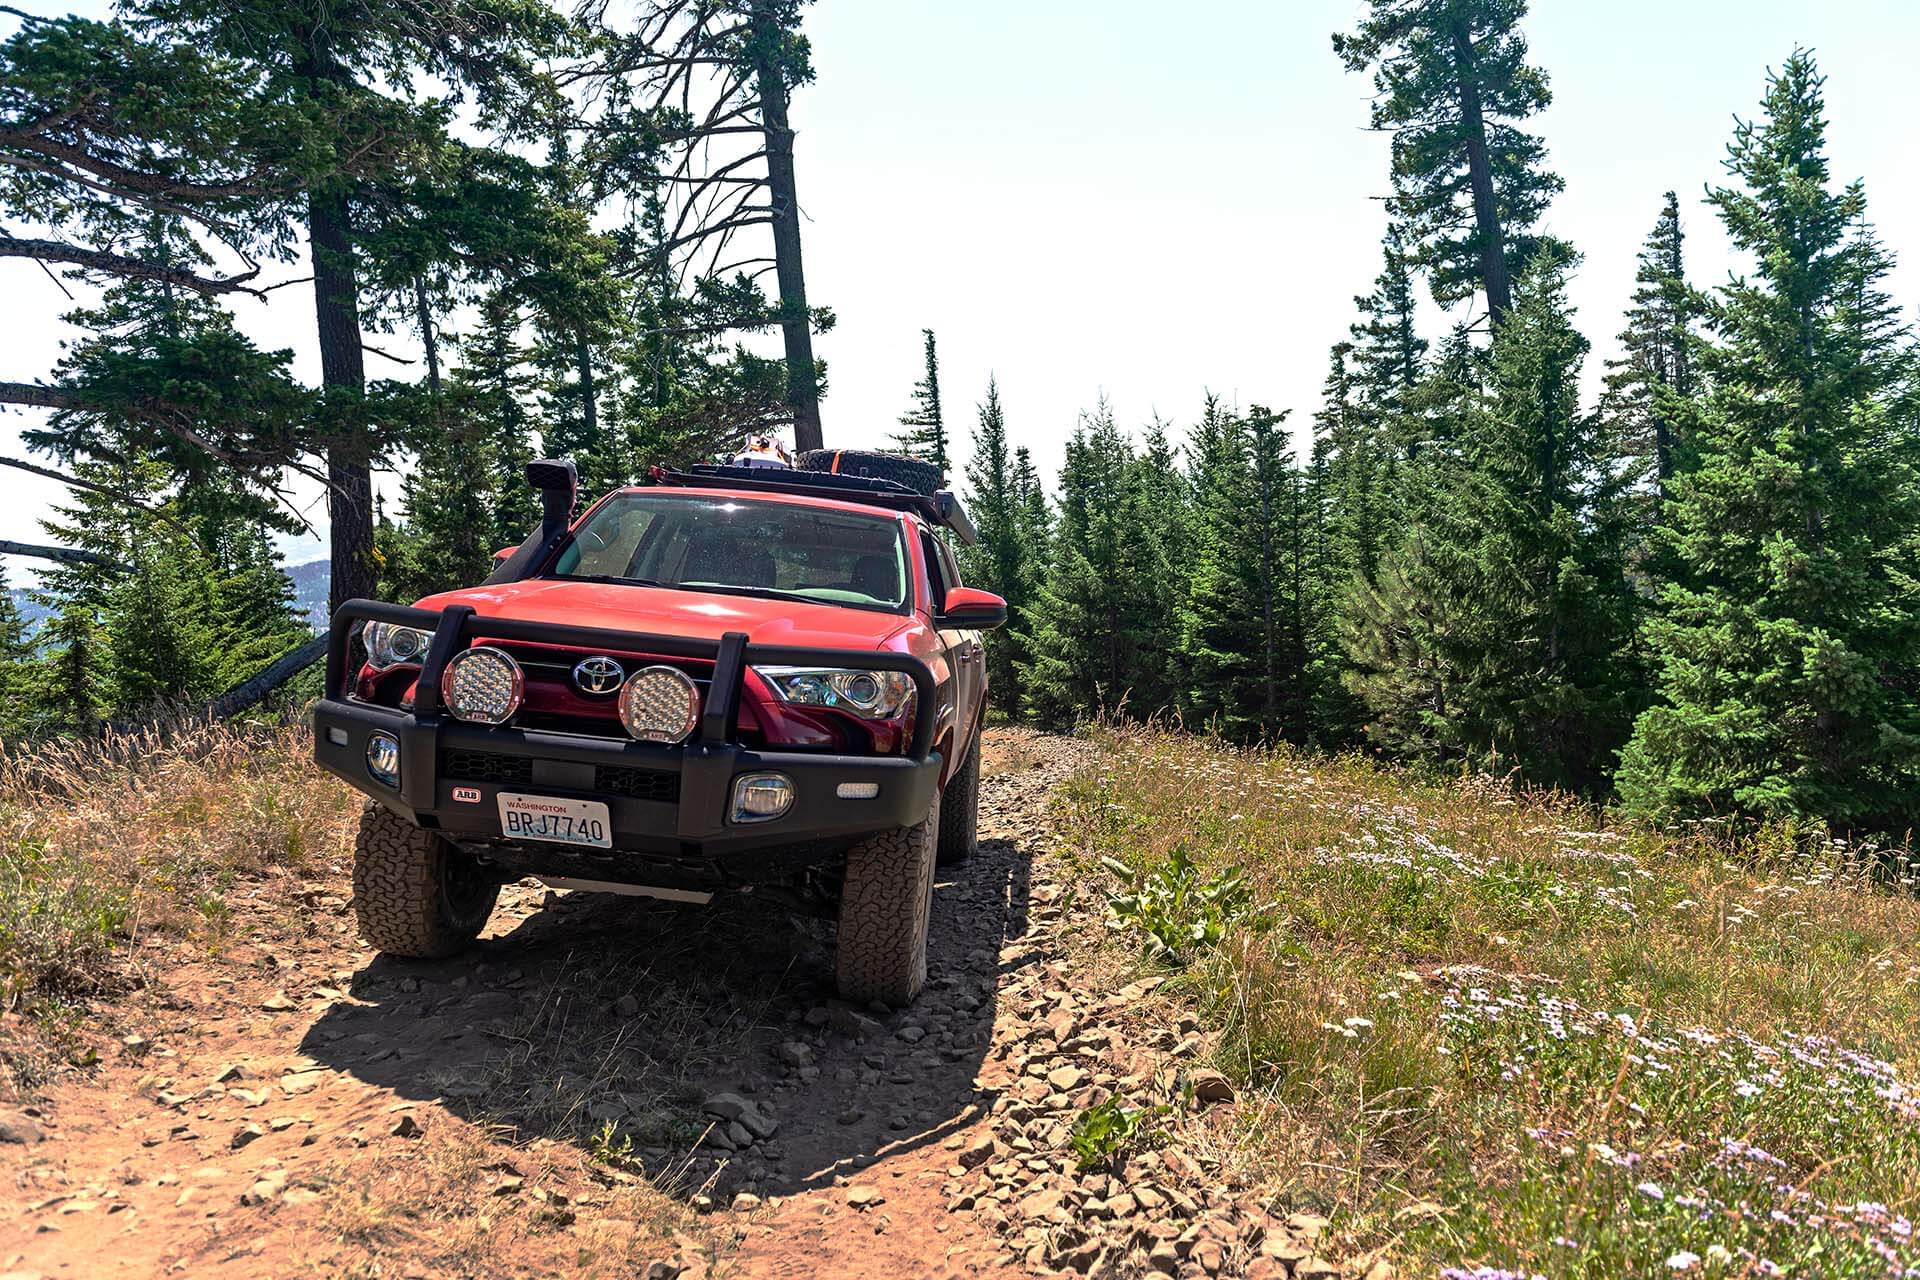 Toyota 4Runner at Red Bald Mountain